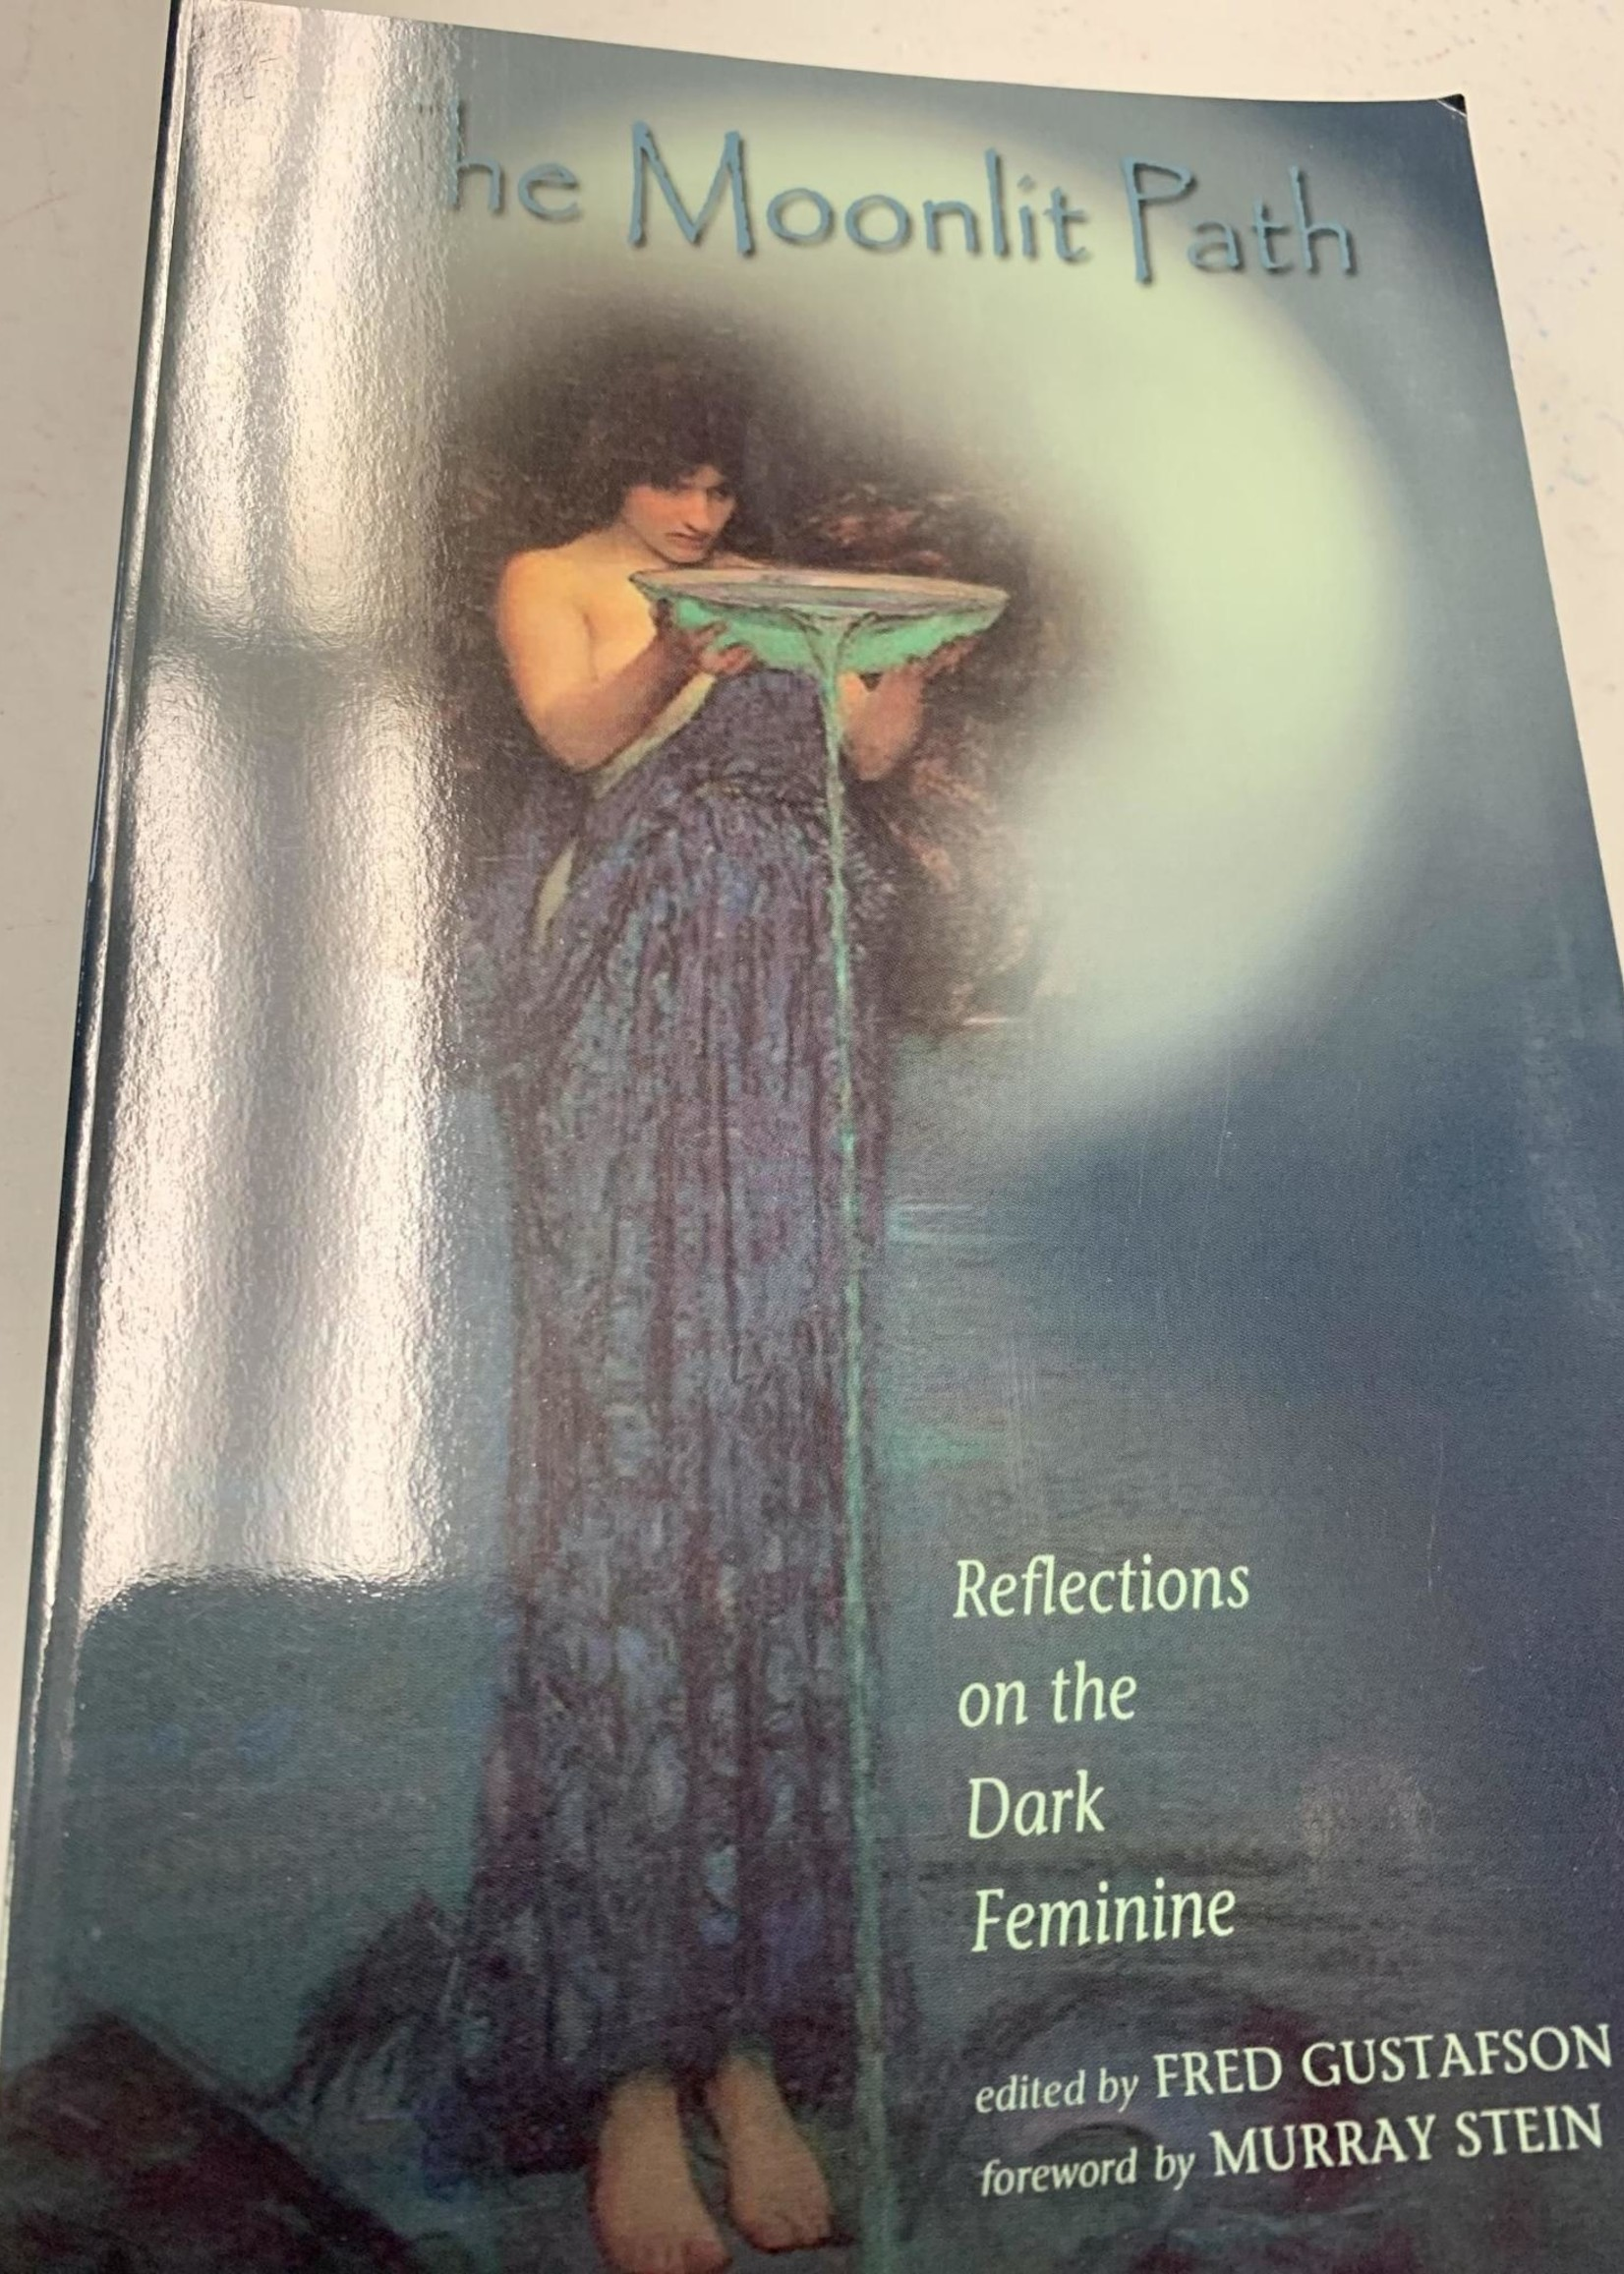 The Moonlit Path Reflections on the Dark Feminine - Fred Gustafson